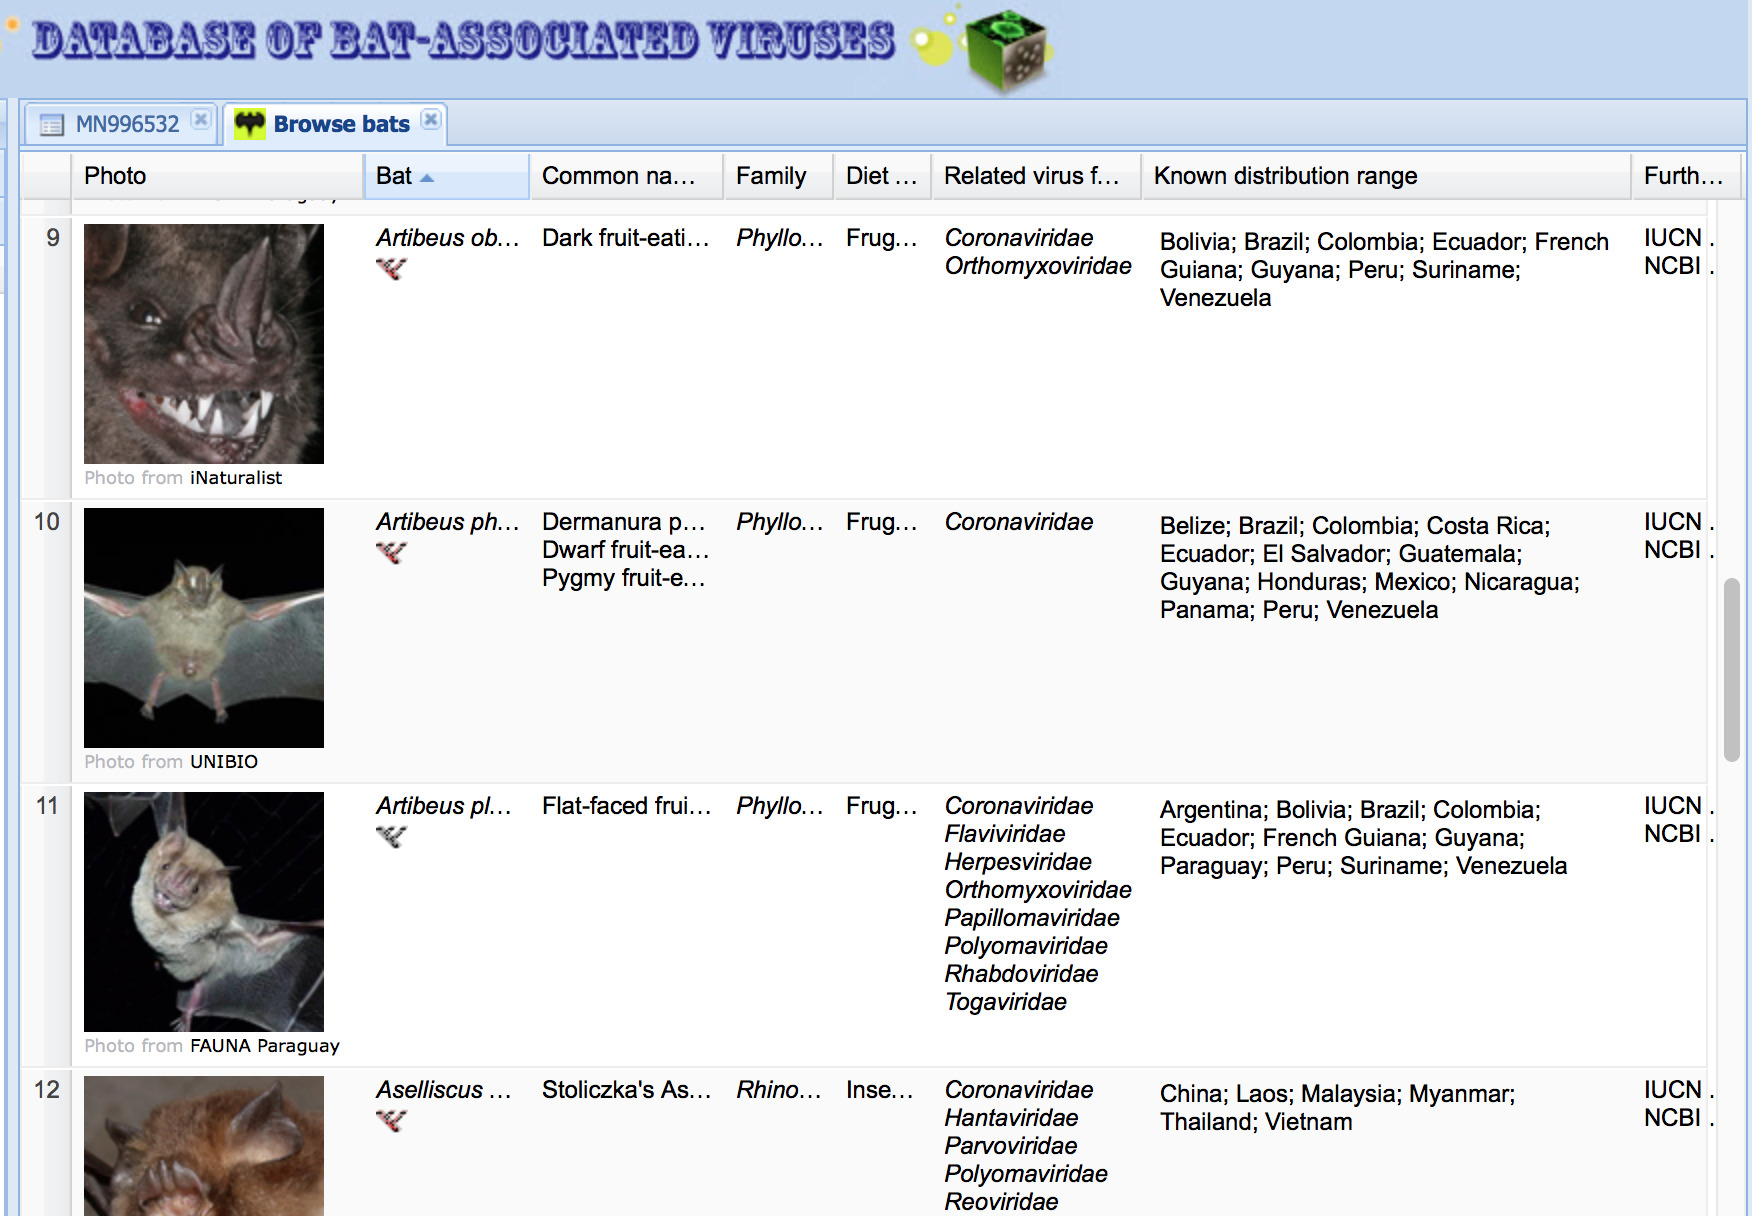 Screengrab bat database Chinese Academy of Medical Sciences. The database contains references to over 12,000 studies of viruses found in bats worldwide.